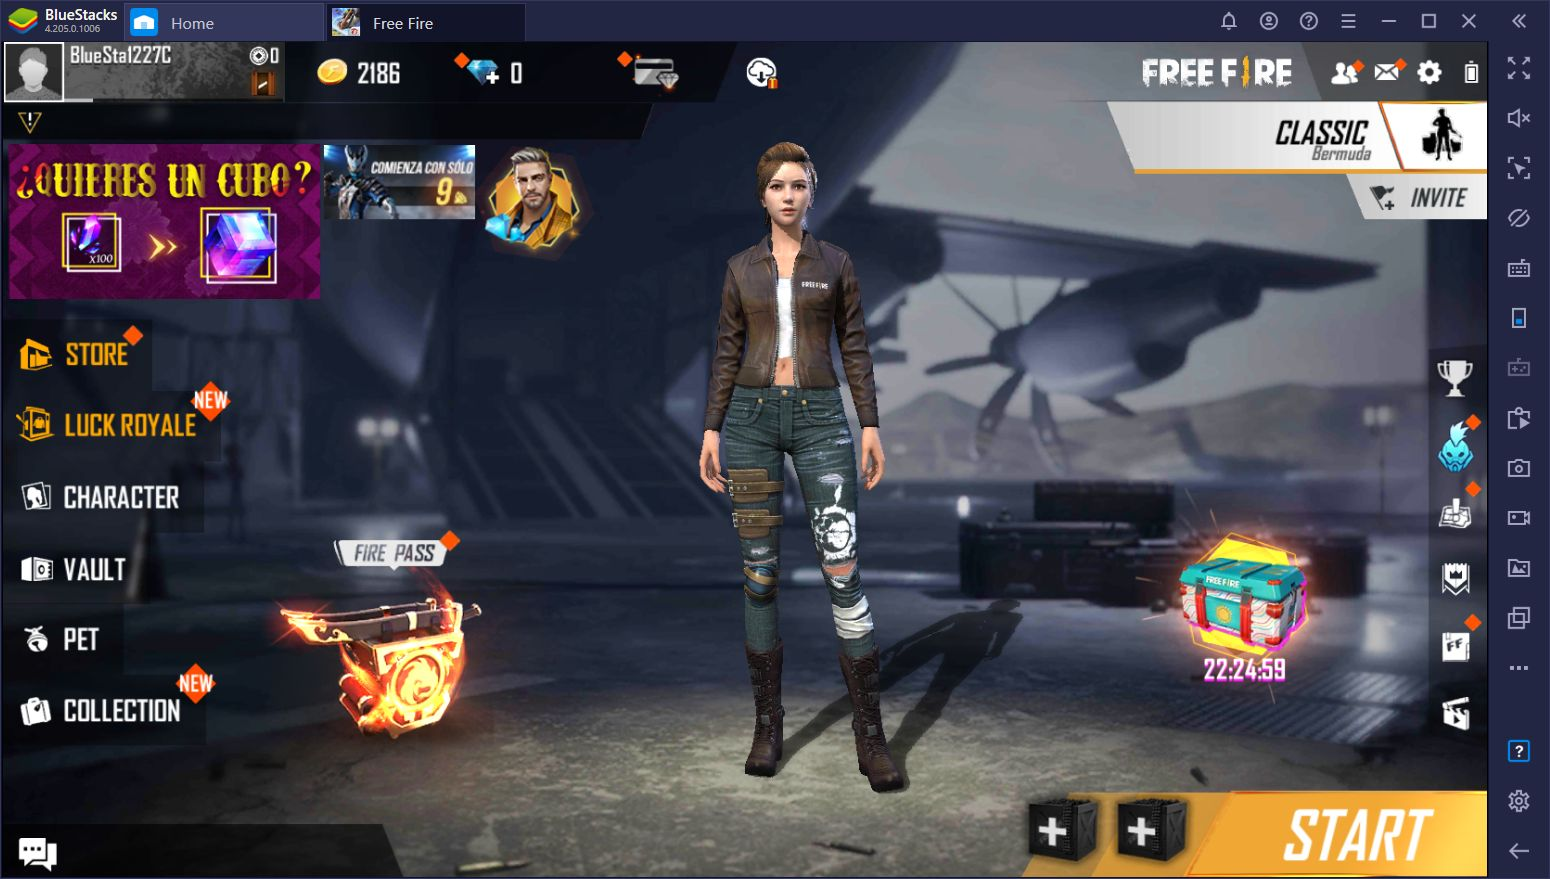 Garena Free Fire - A Comprehensive List of Guides and Tips For This Battle Royale Game